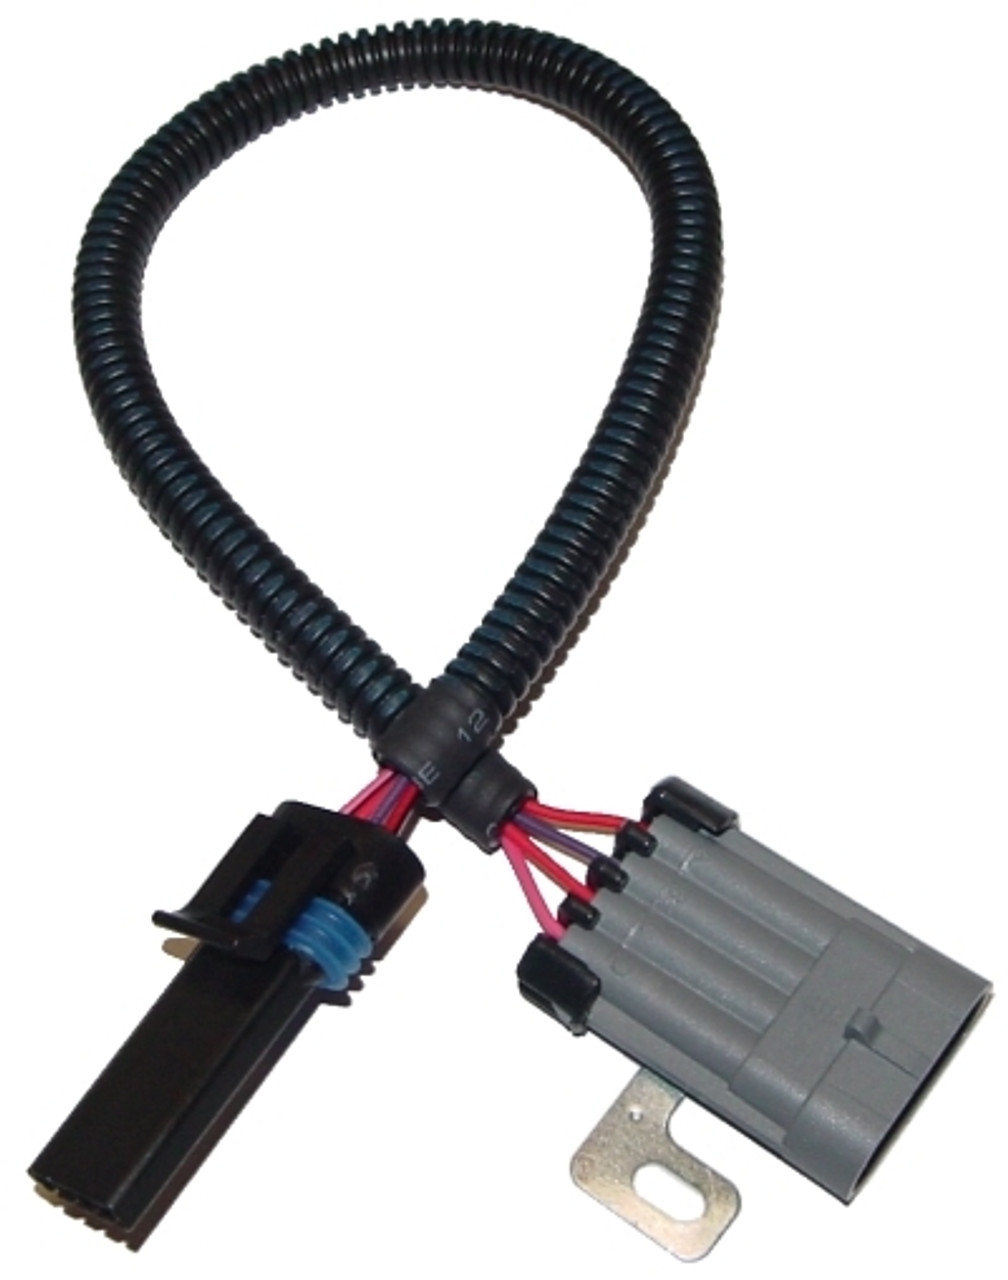 Wiring Harness Cable For Chevy 95 97 Lt1 Optispark - Daily